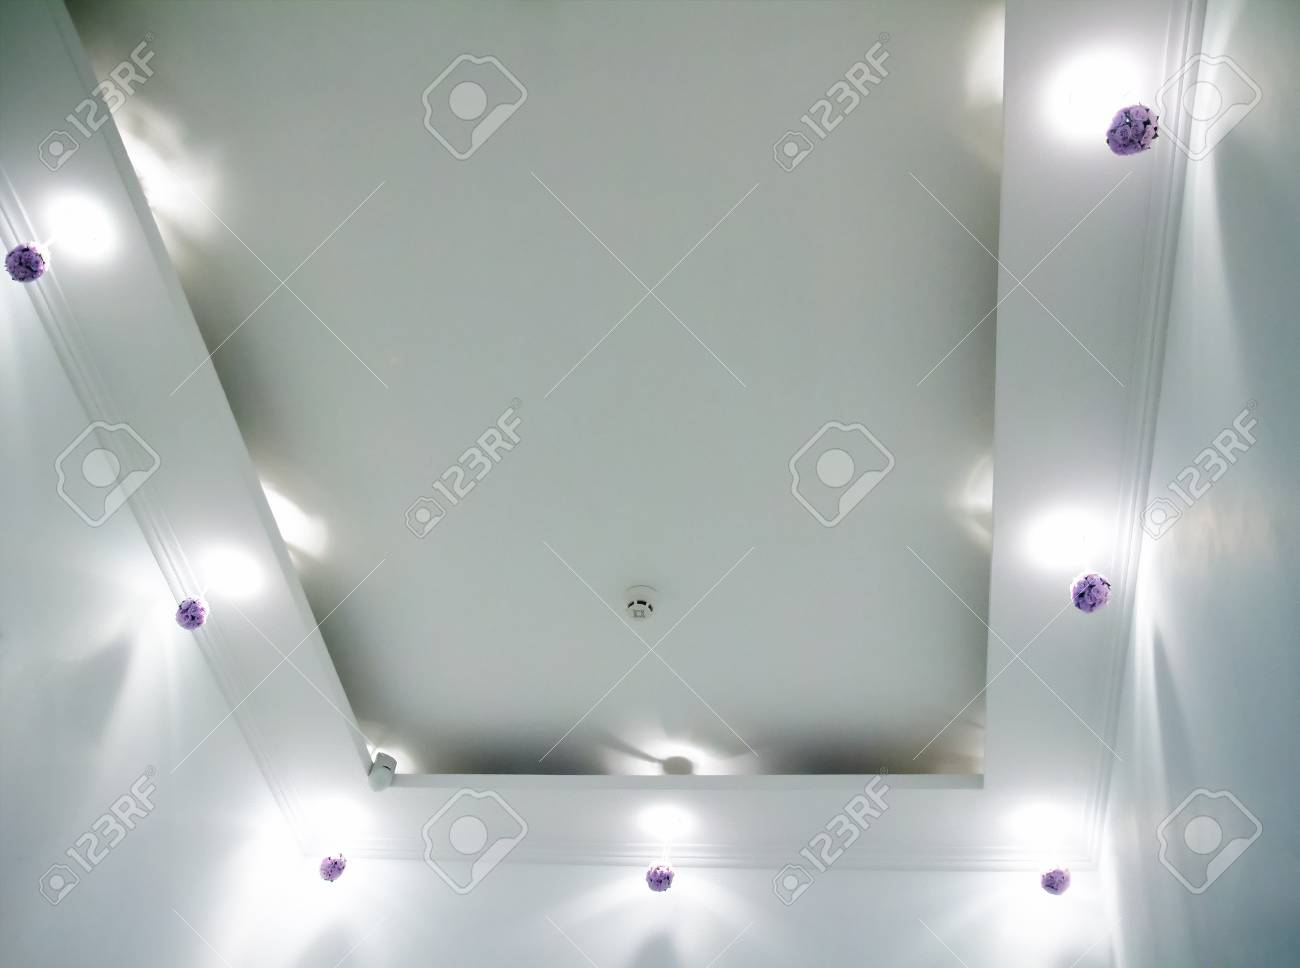 White Ceiling With Small Round Ceiling Lamps And Hidden Ceiling Stock Photo Picture And Royalty Free Image Image 73253116